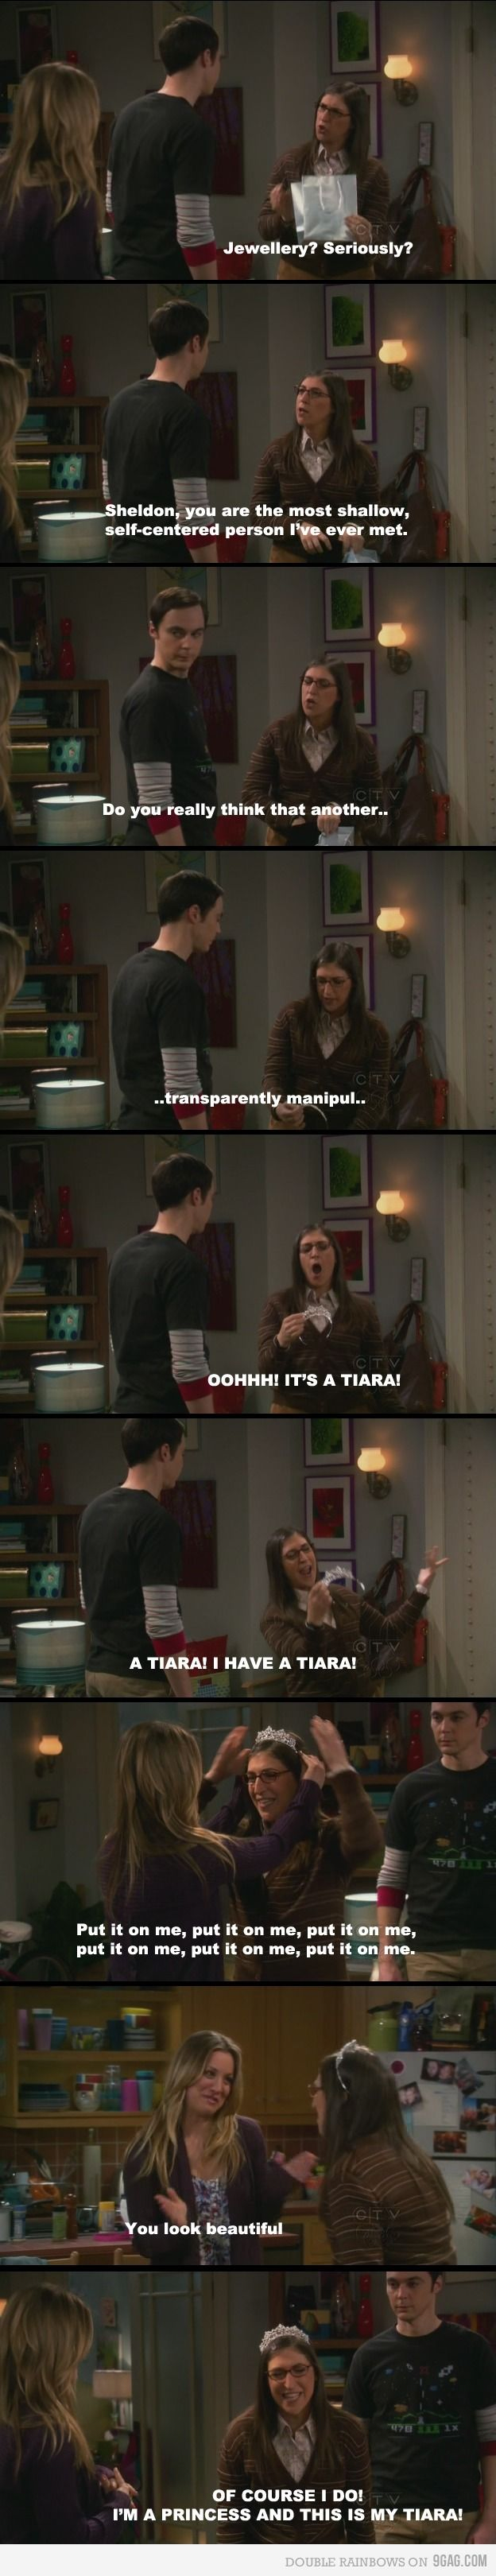 big bang theory: Favorite Scene, Laughing, Girls, Big Bang Theory, Amy Farrah Fowler, Big Bangs Theory, Funny, Princesses, Tiaras